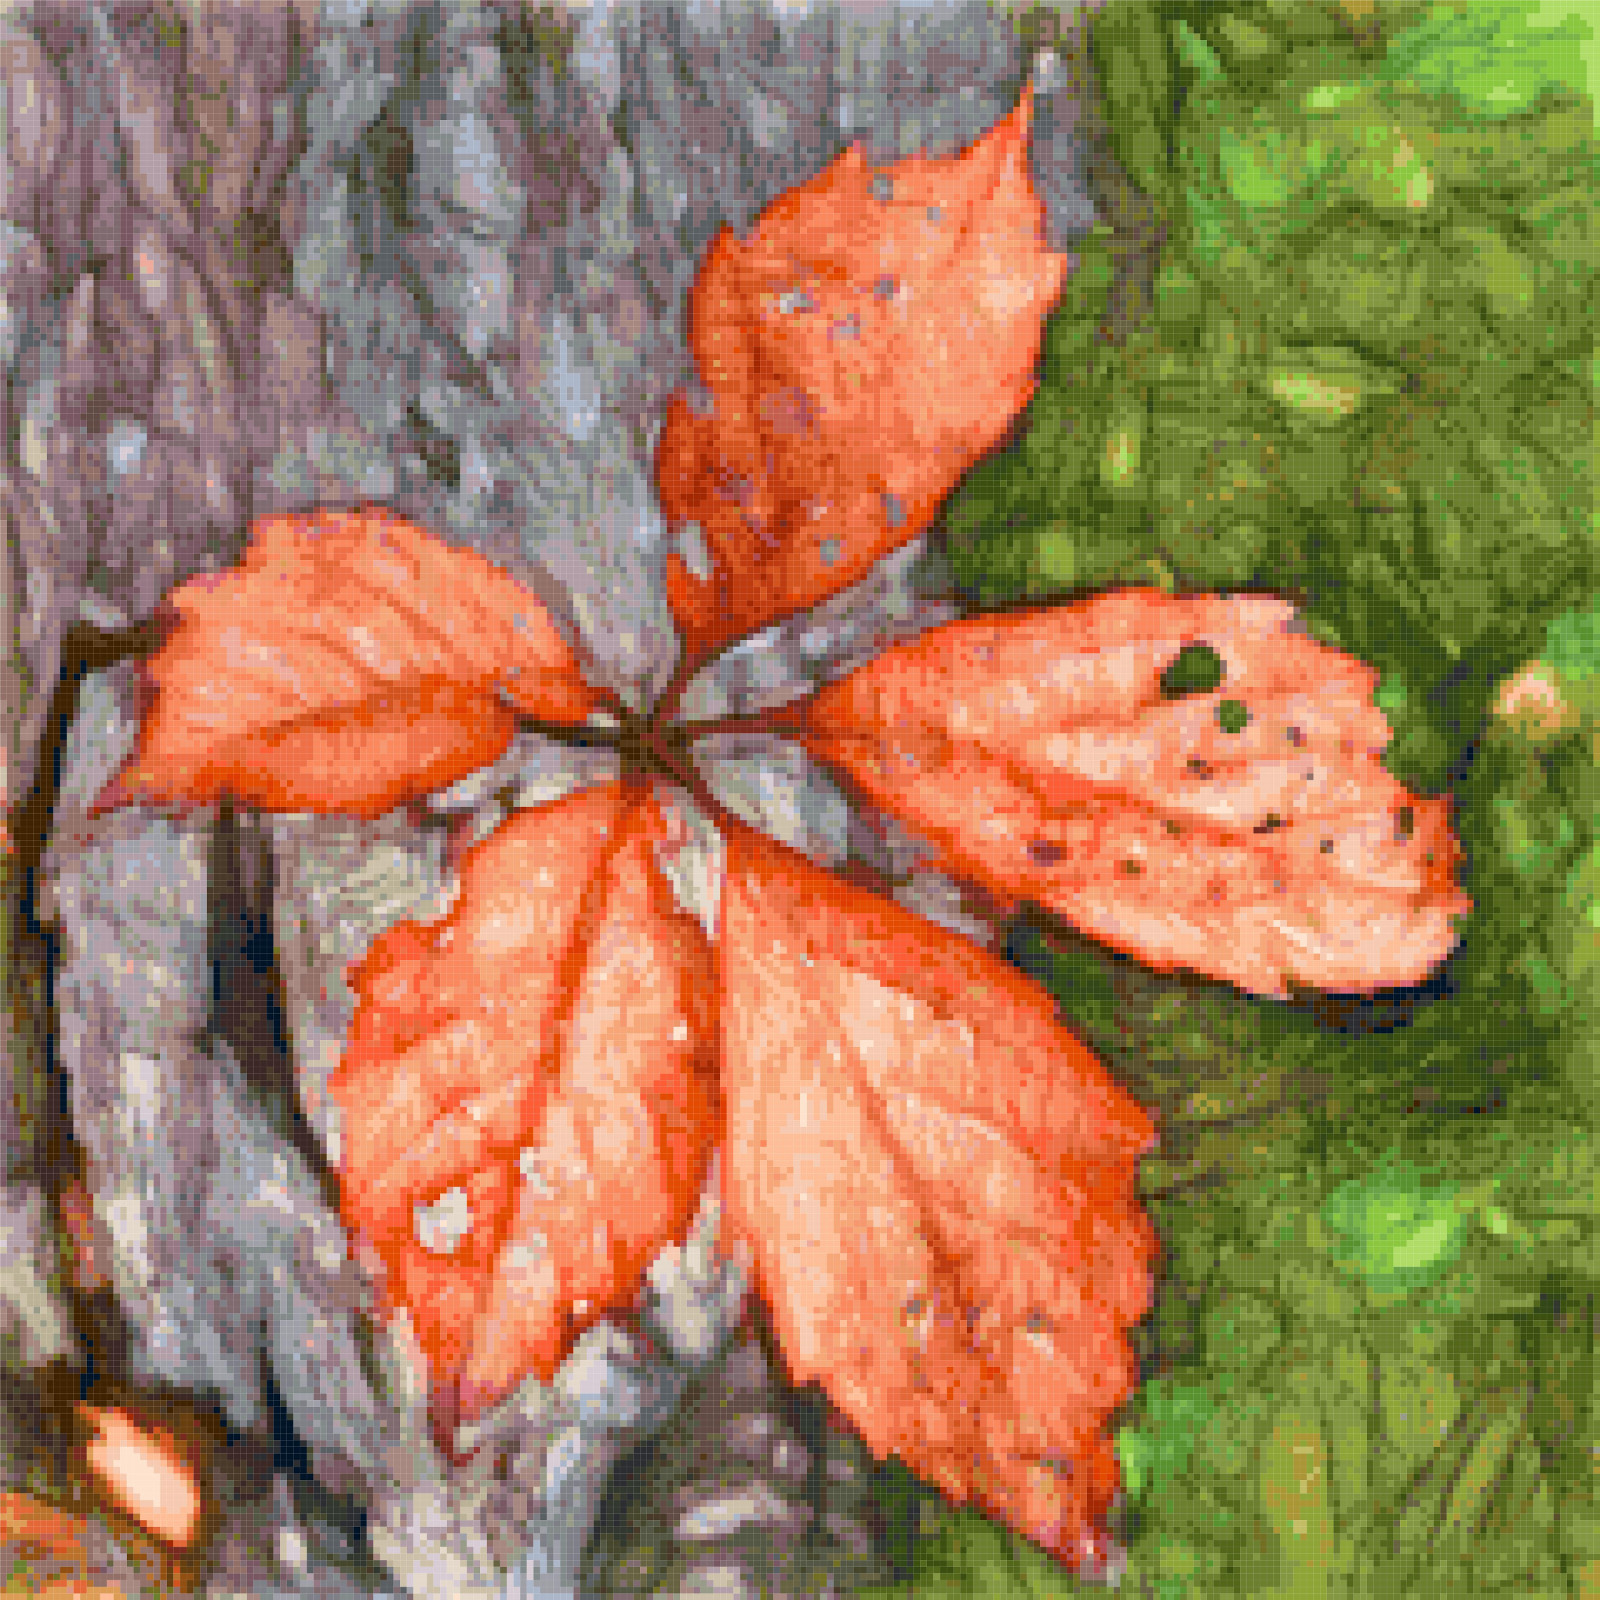 leaf cross stitch image